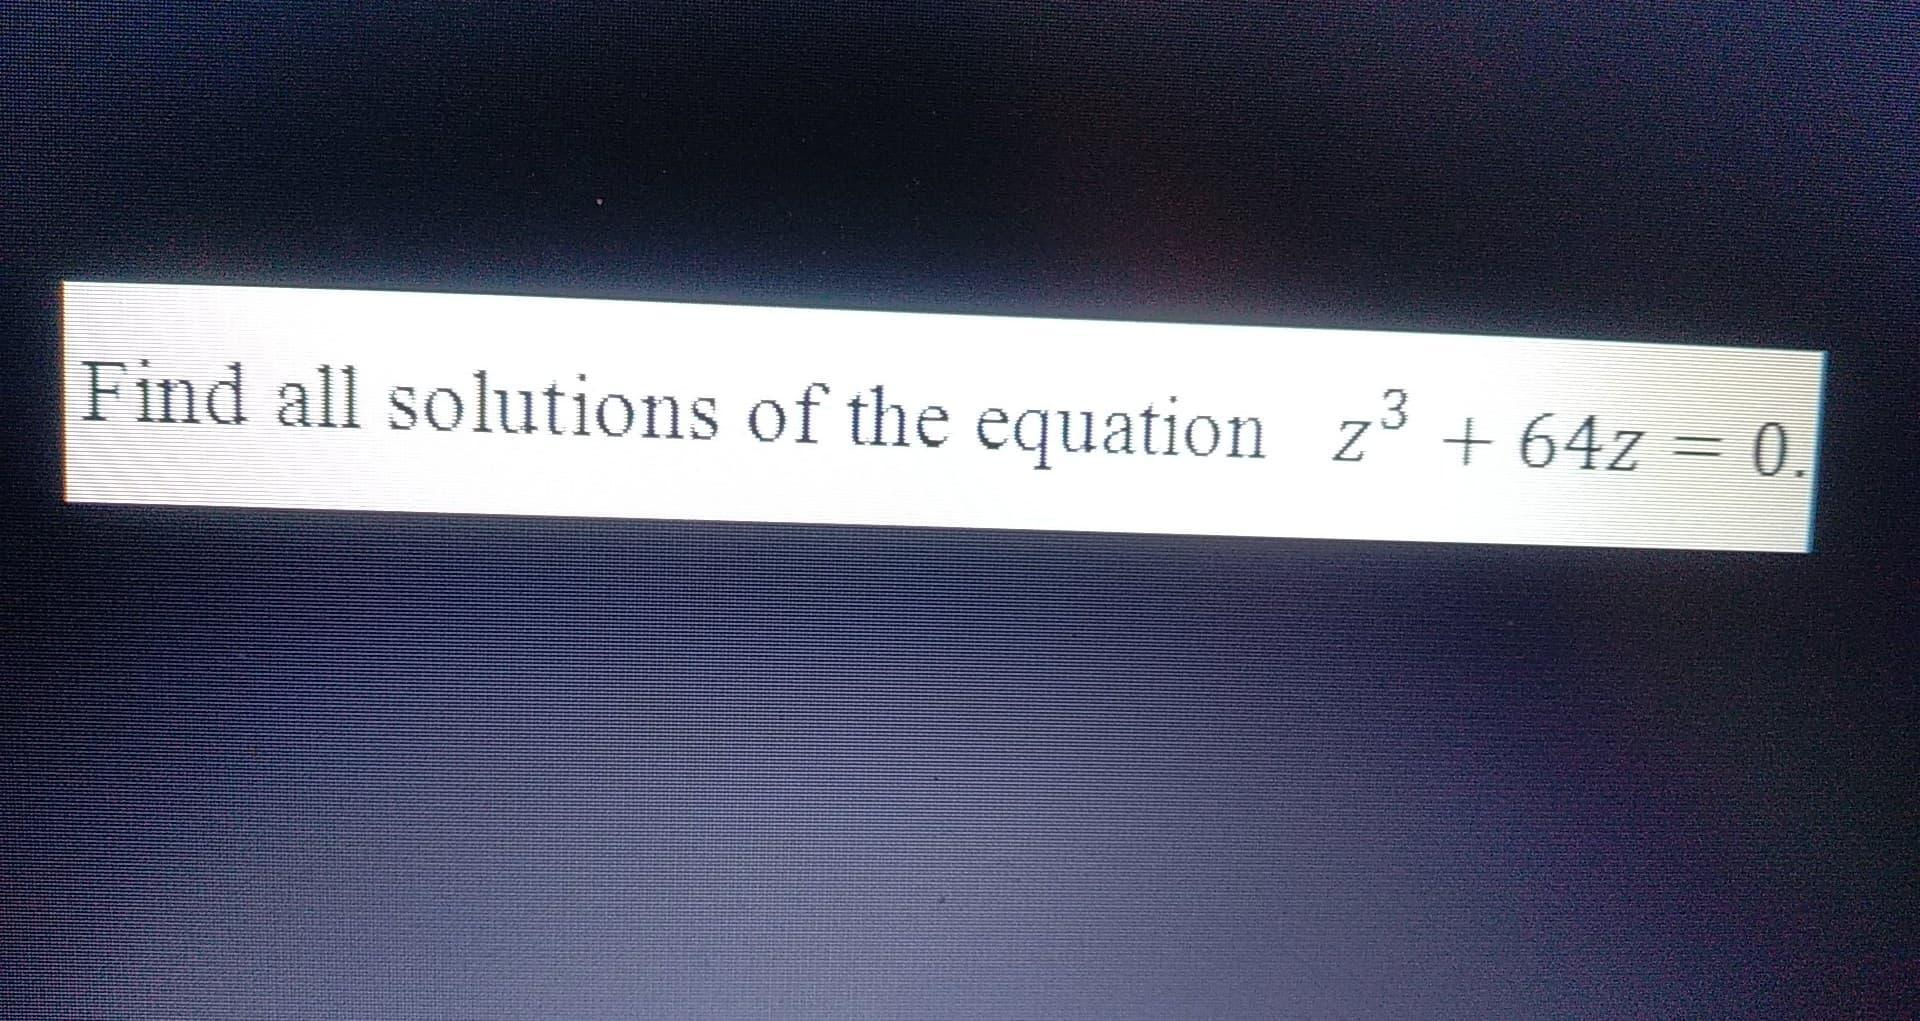 Find all solutions of the equation zº + 64z = 0.